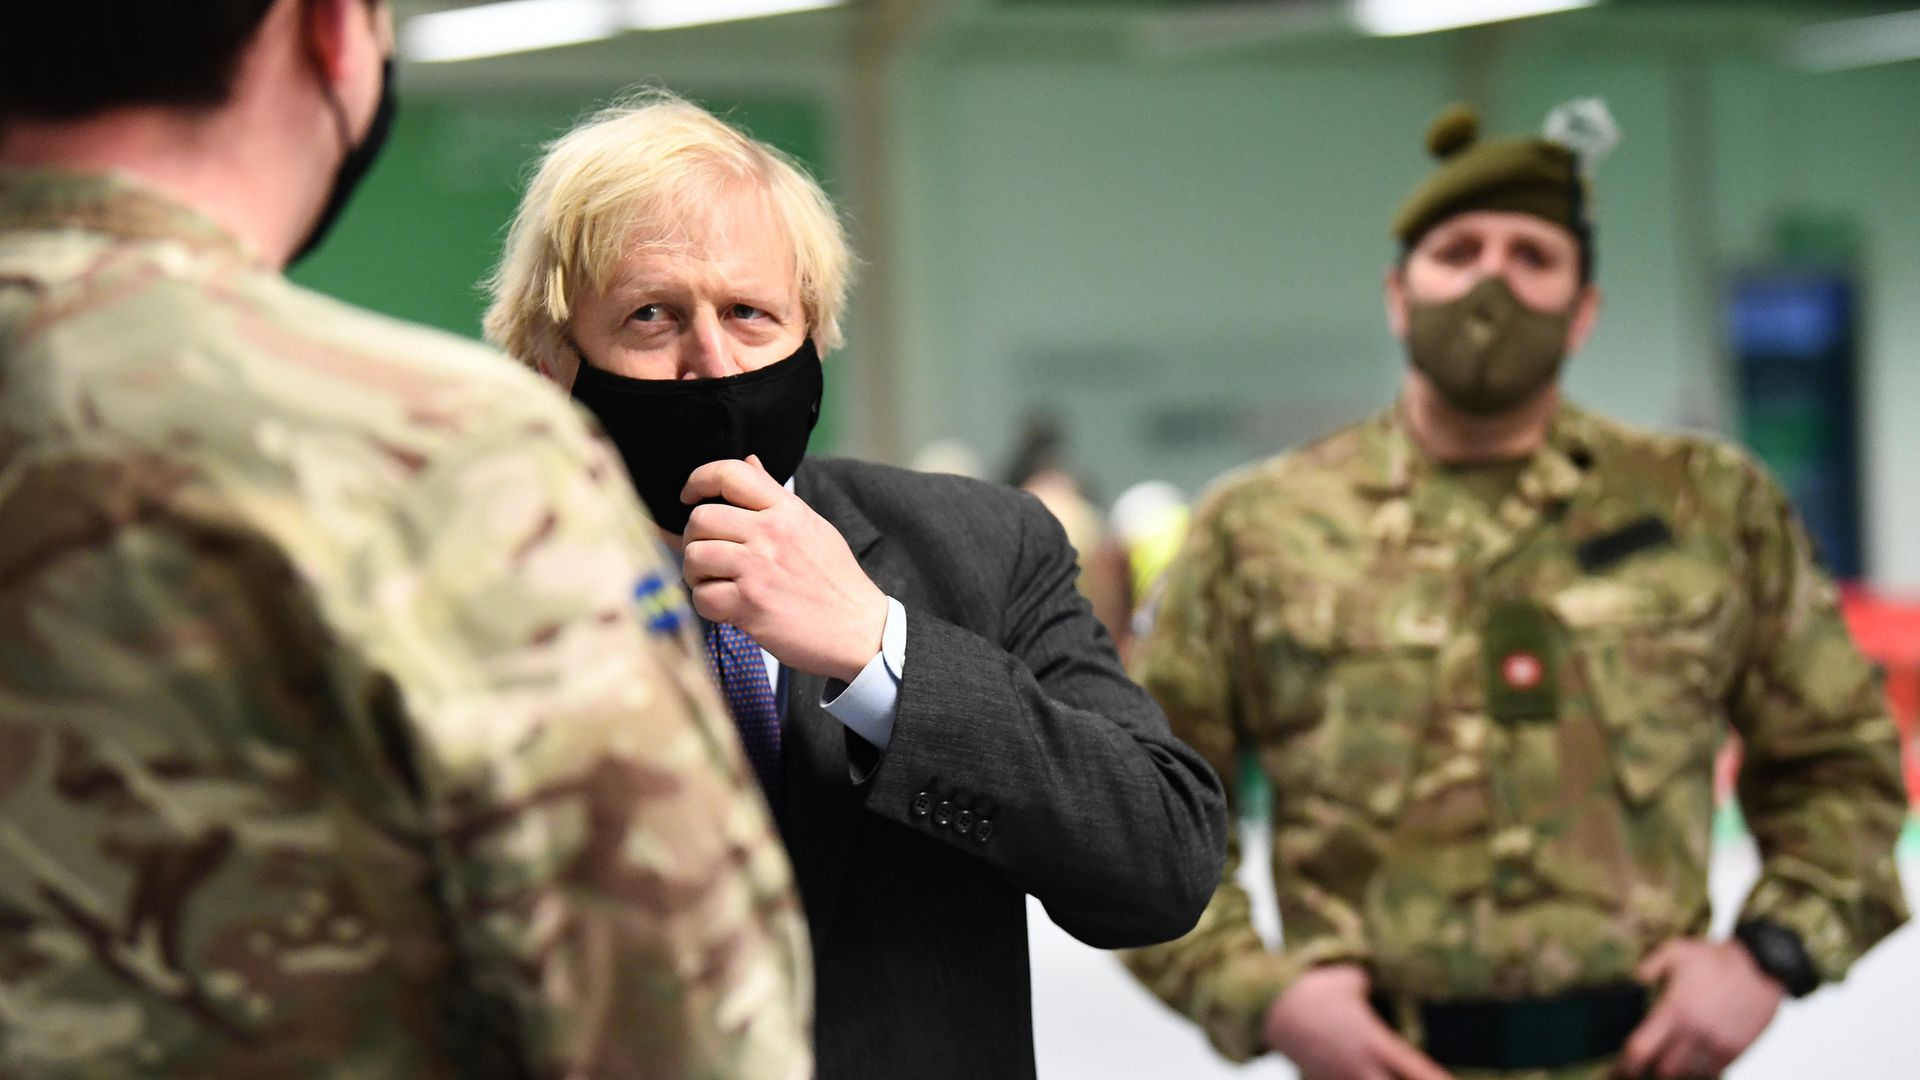 Prime minister Boris Johnson meets troops setting up a vaccination centre in the Castlemilk district of Glasgow on his one day visit to Scotland - Credit: PA